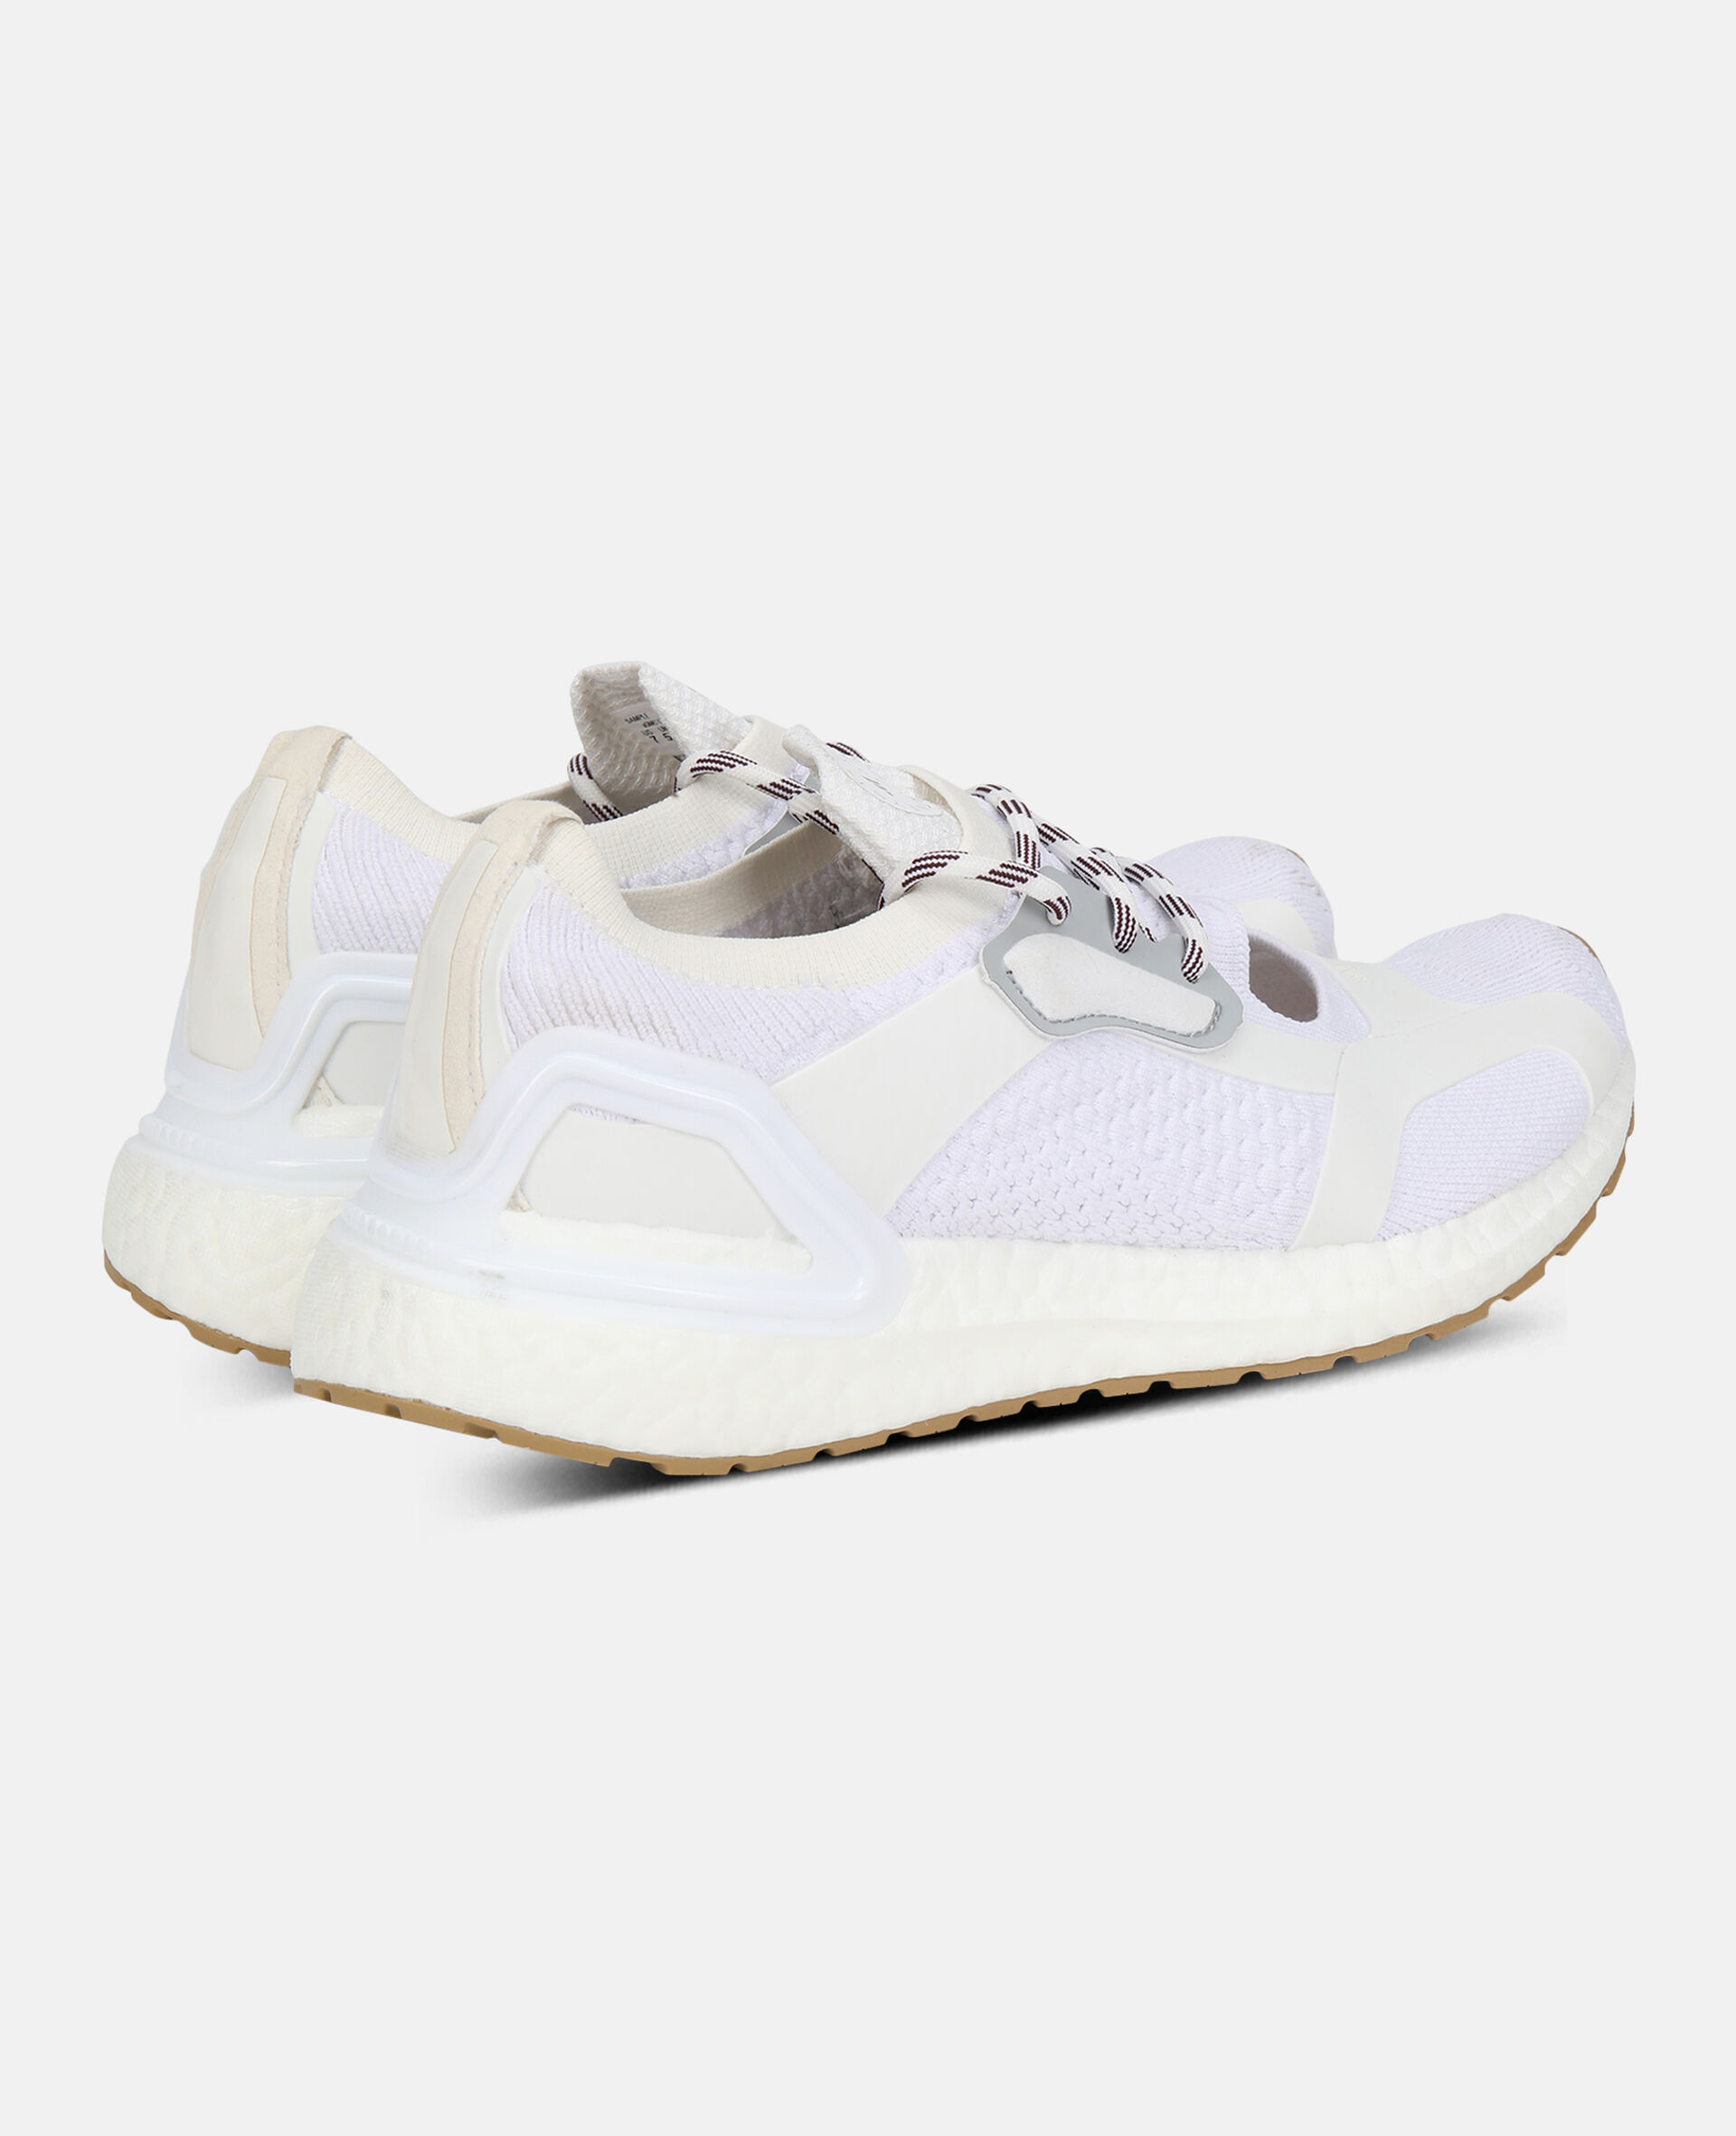 White Ultraboost Trainers-White-large image number 4